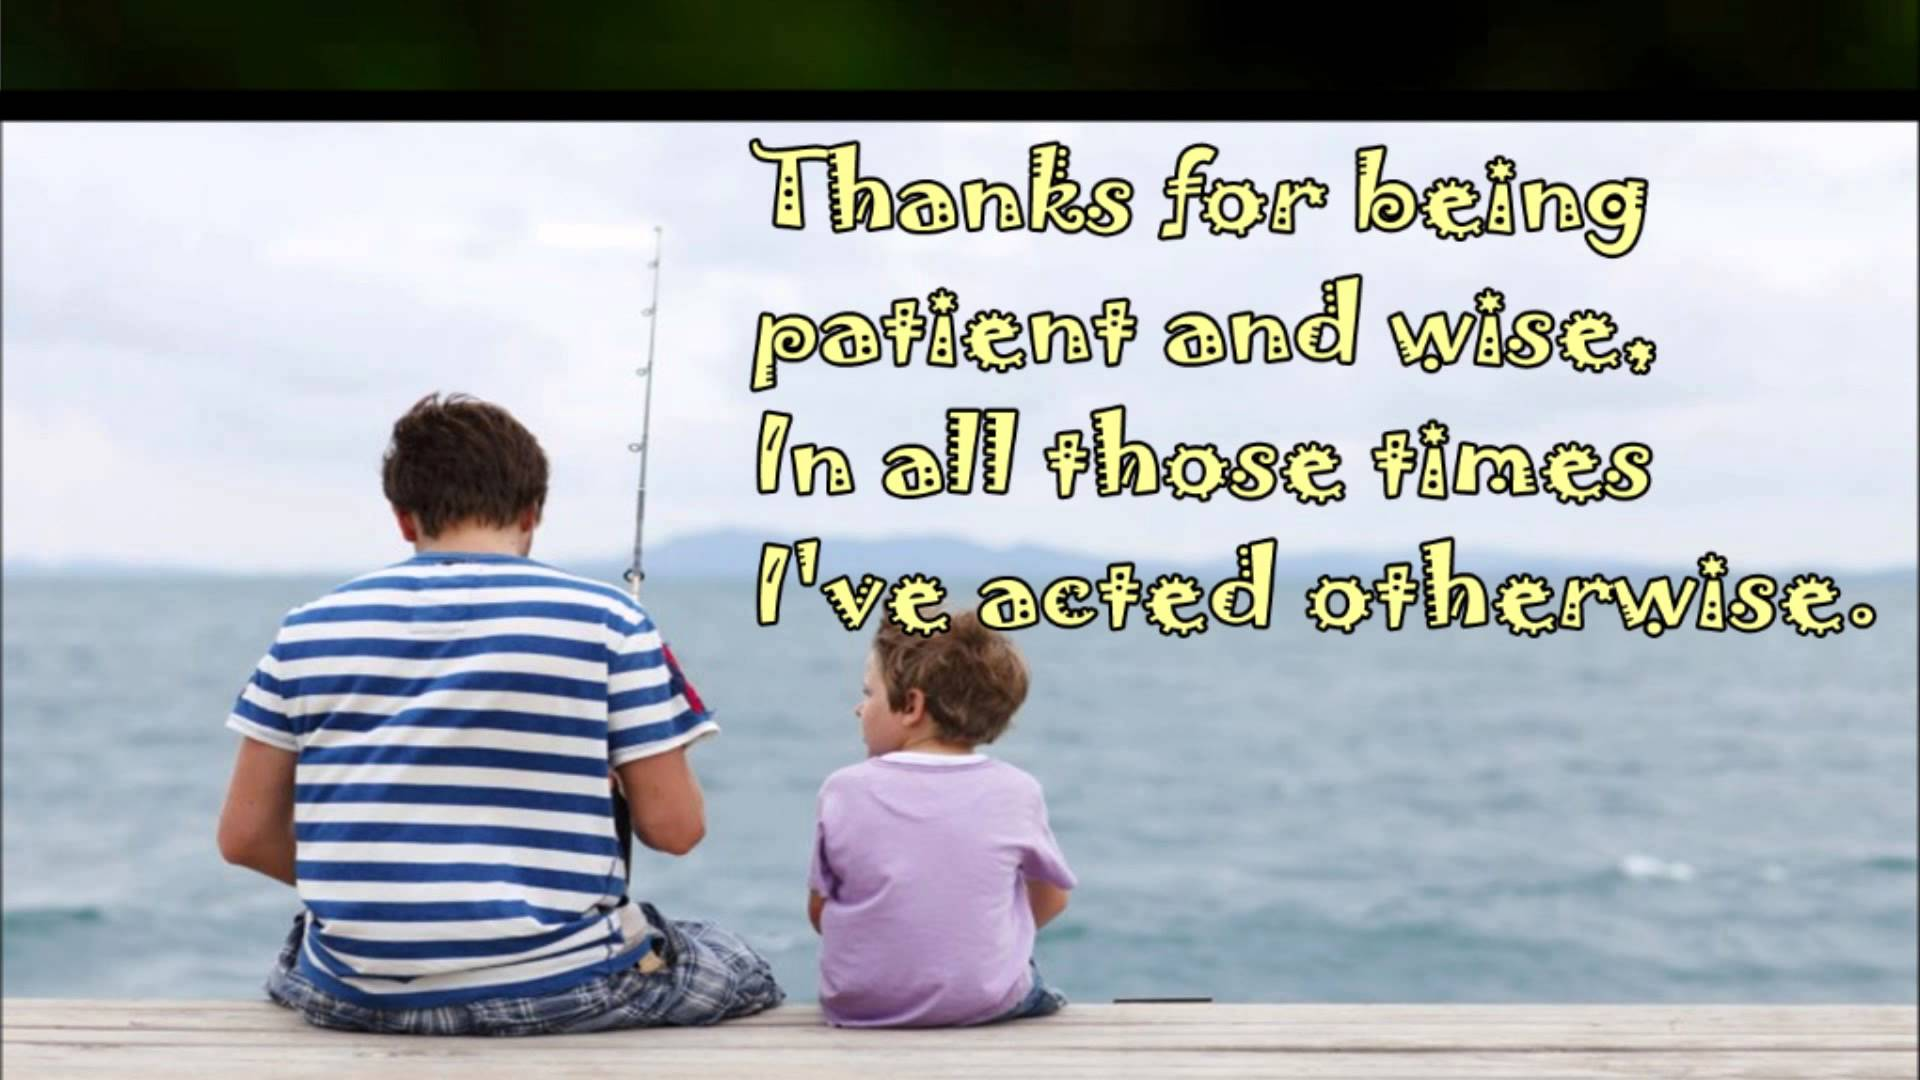 Fathers Day Whatsapp Status Wallpaper